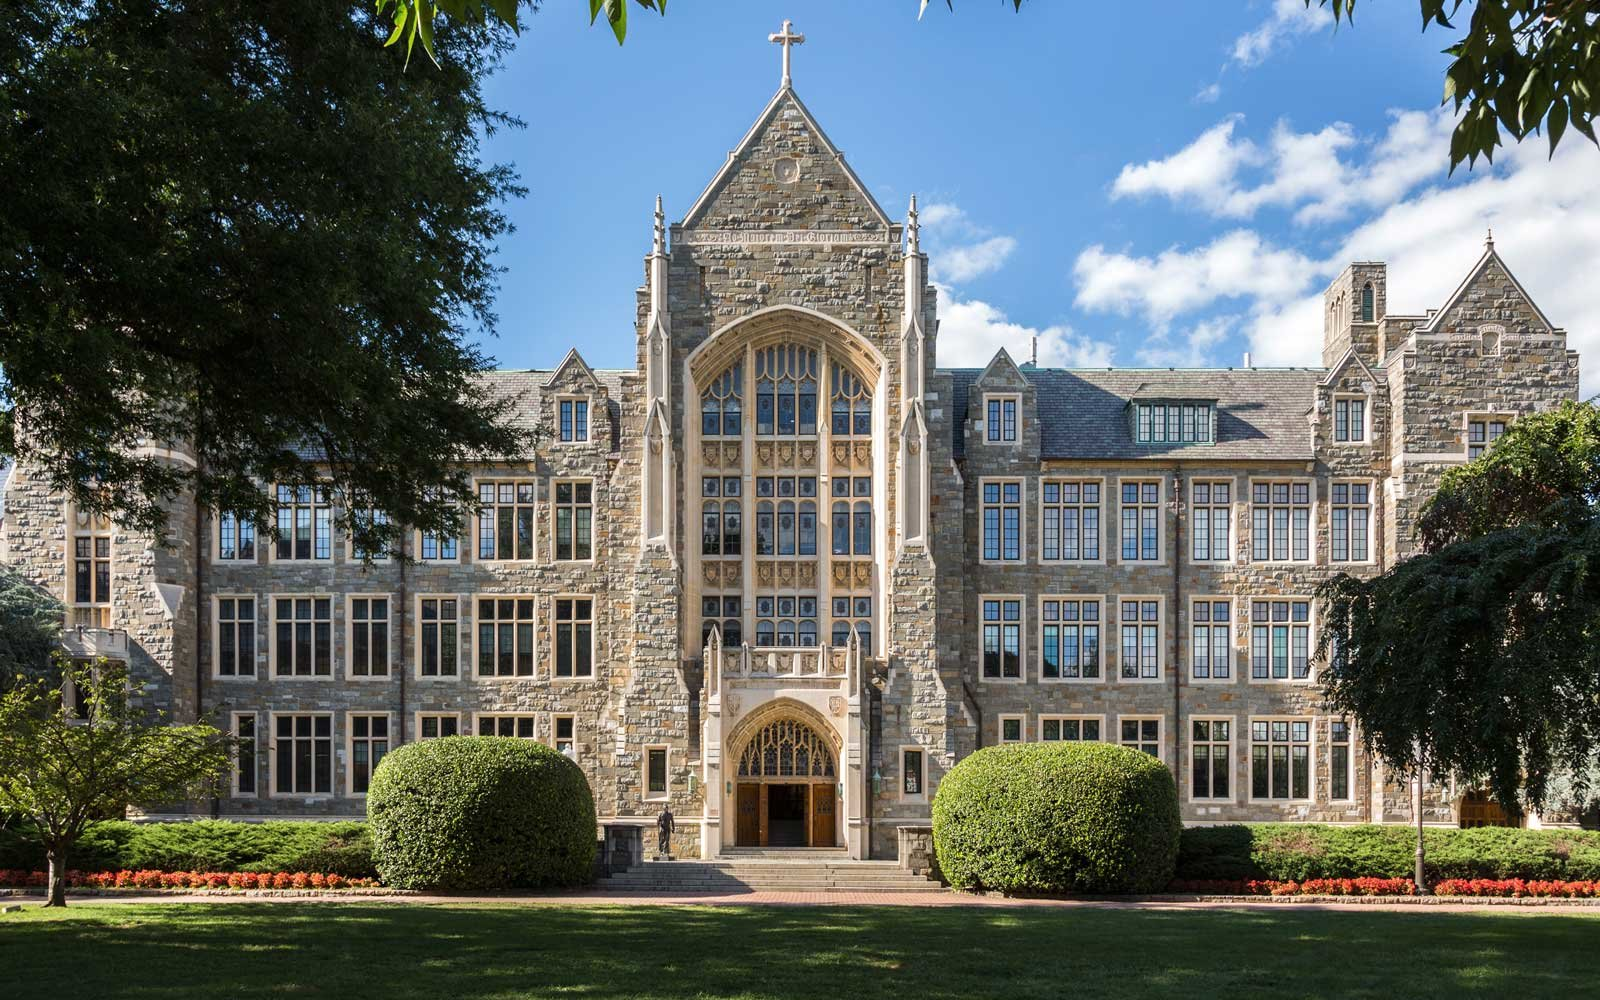 Georgetown University in Washington, D.C.